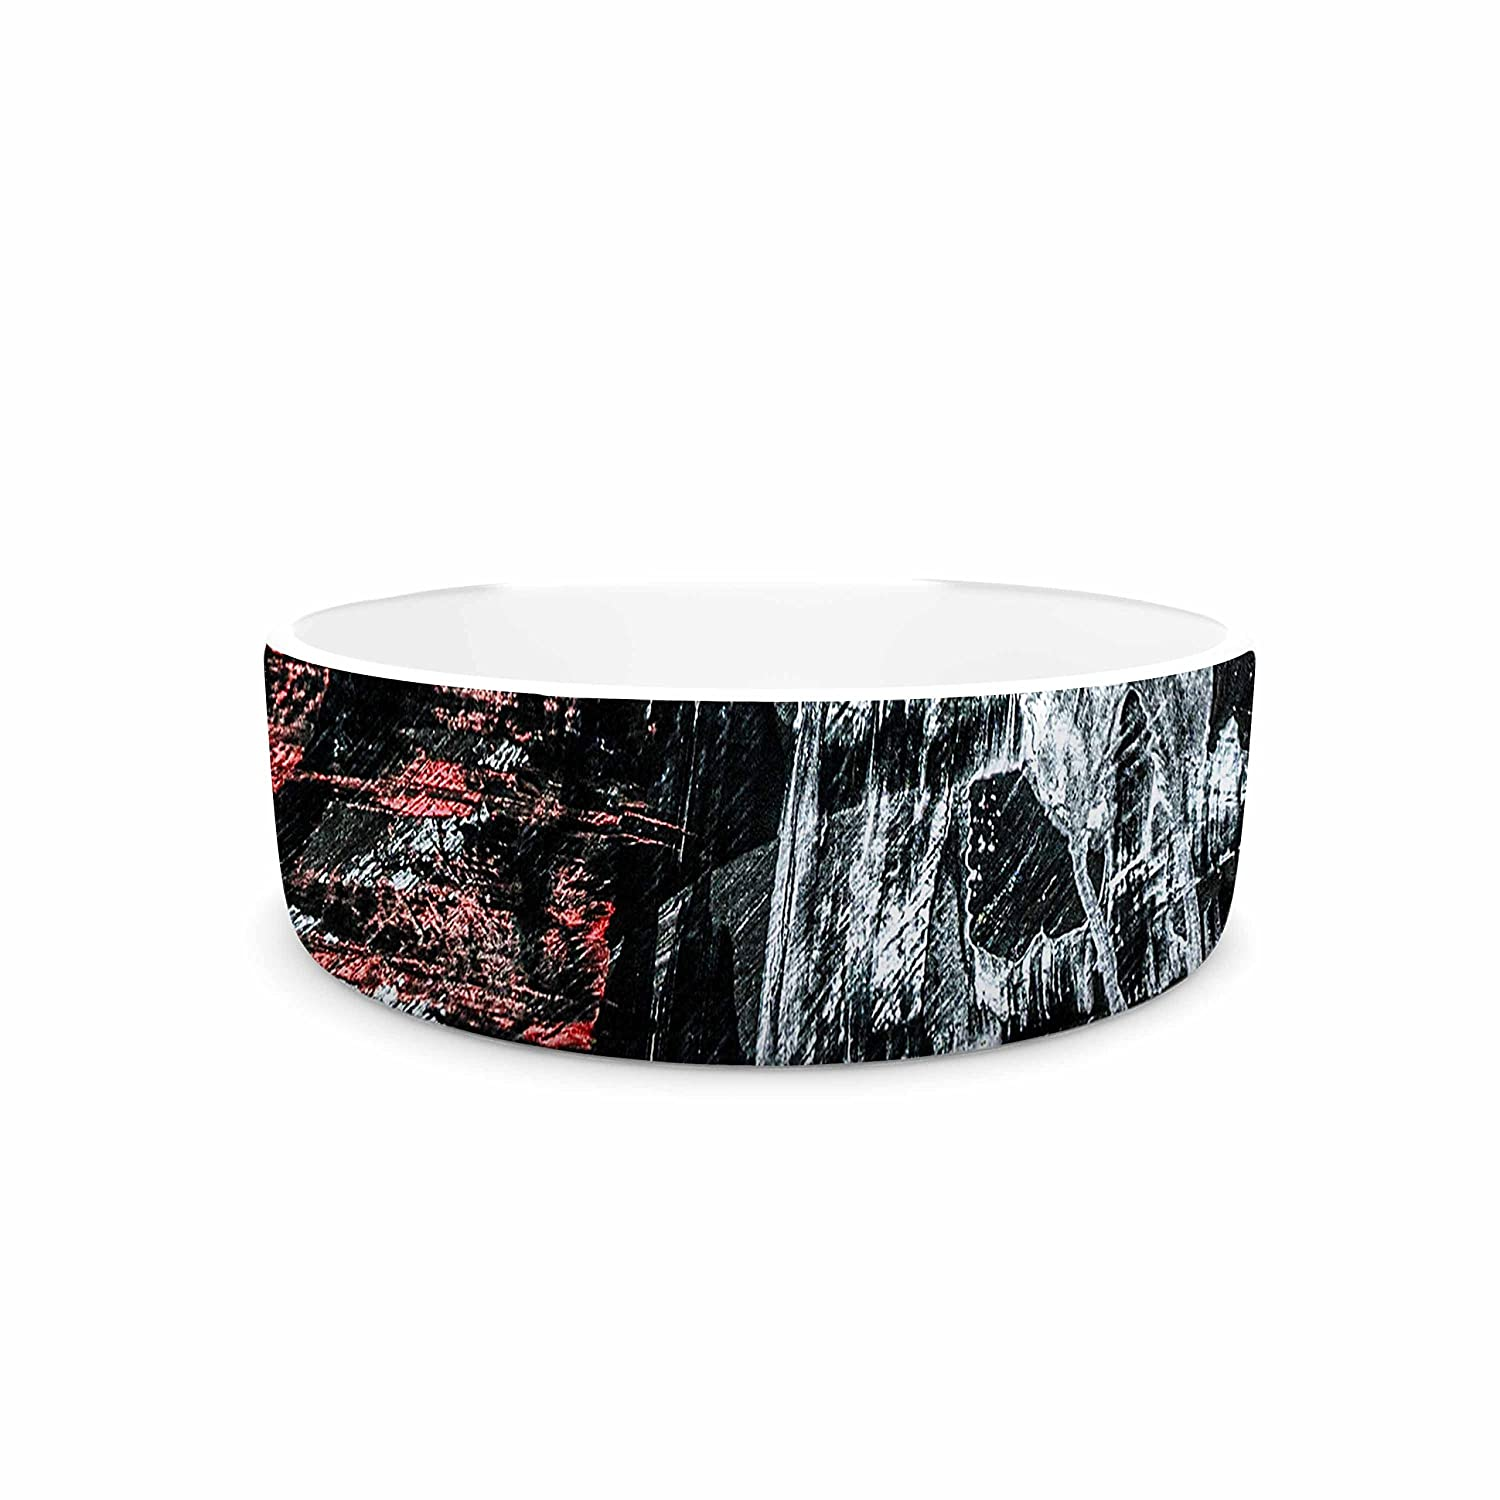 7\ KESS InHouse Bruce Stanfield Areus  Red Abstract Pet Bowl, 7